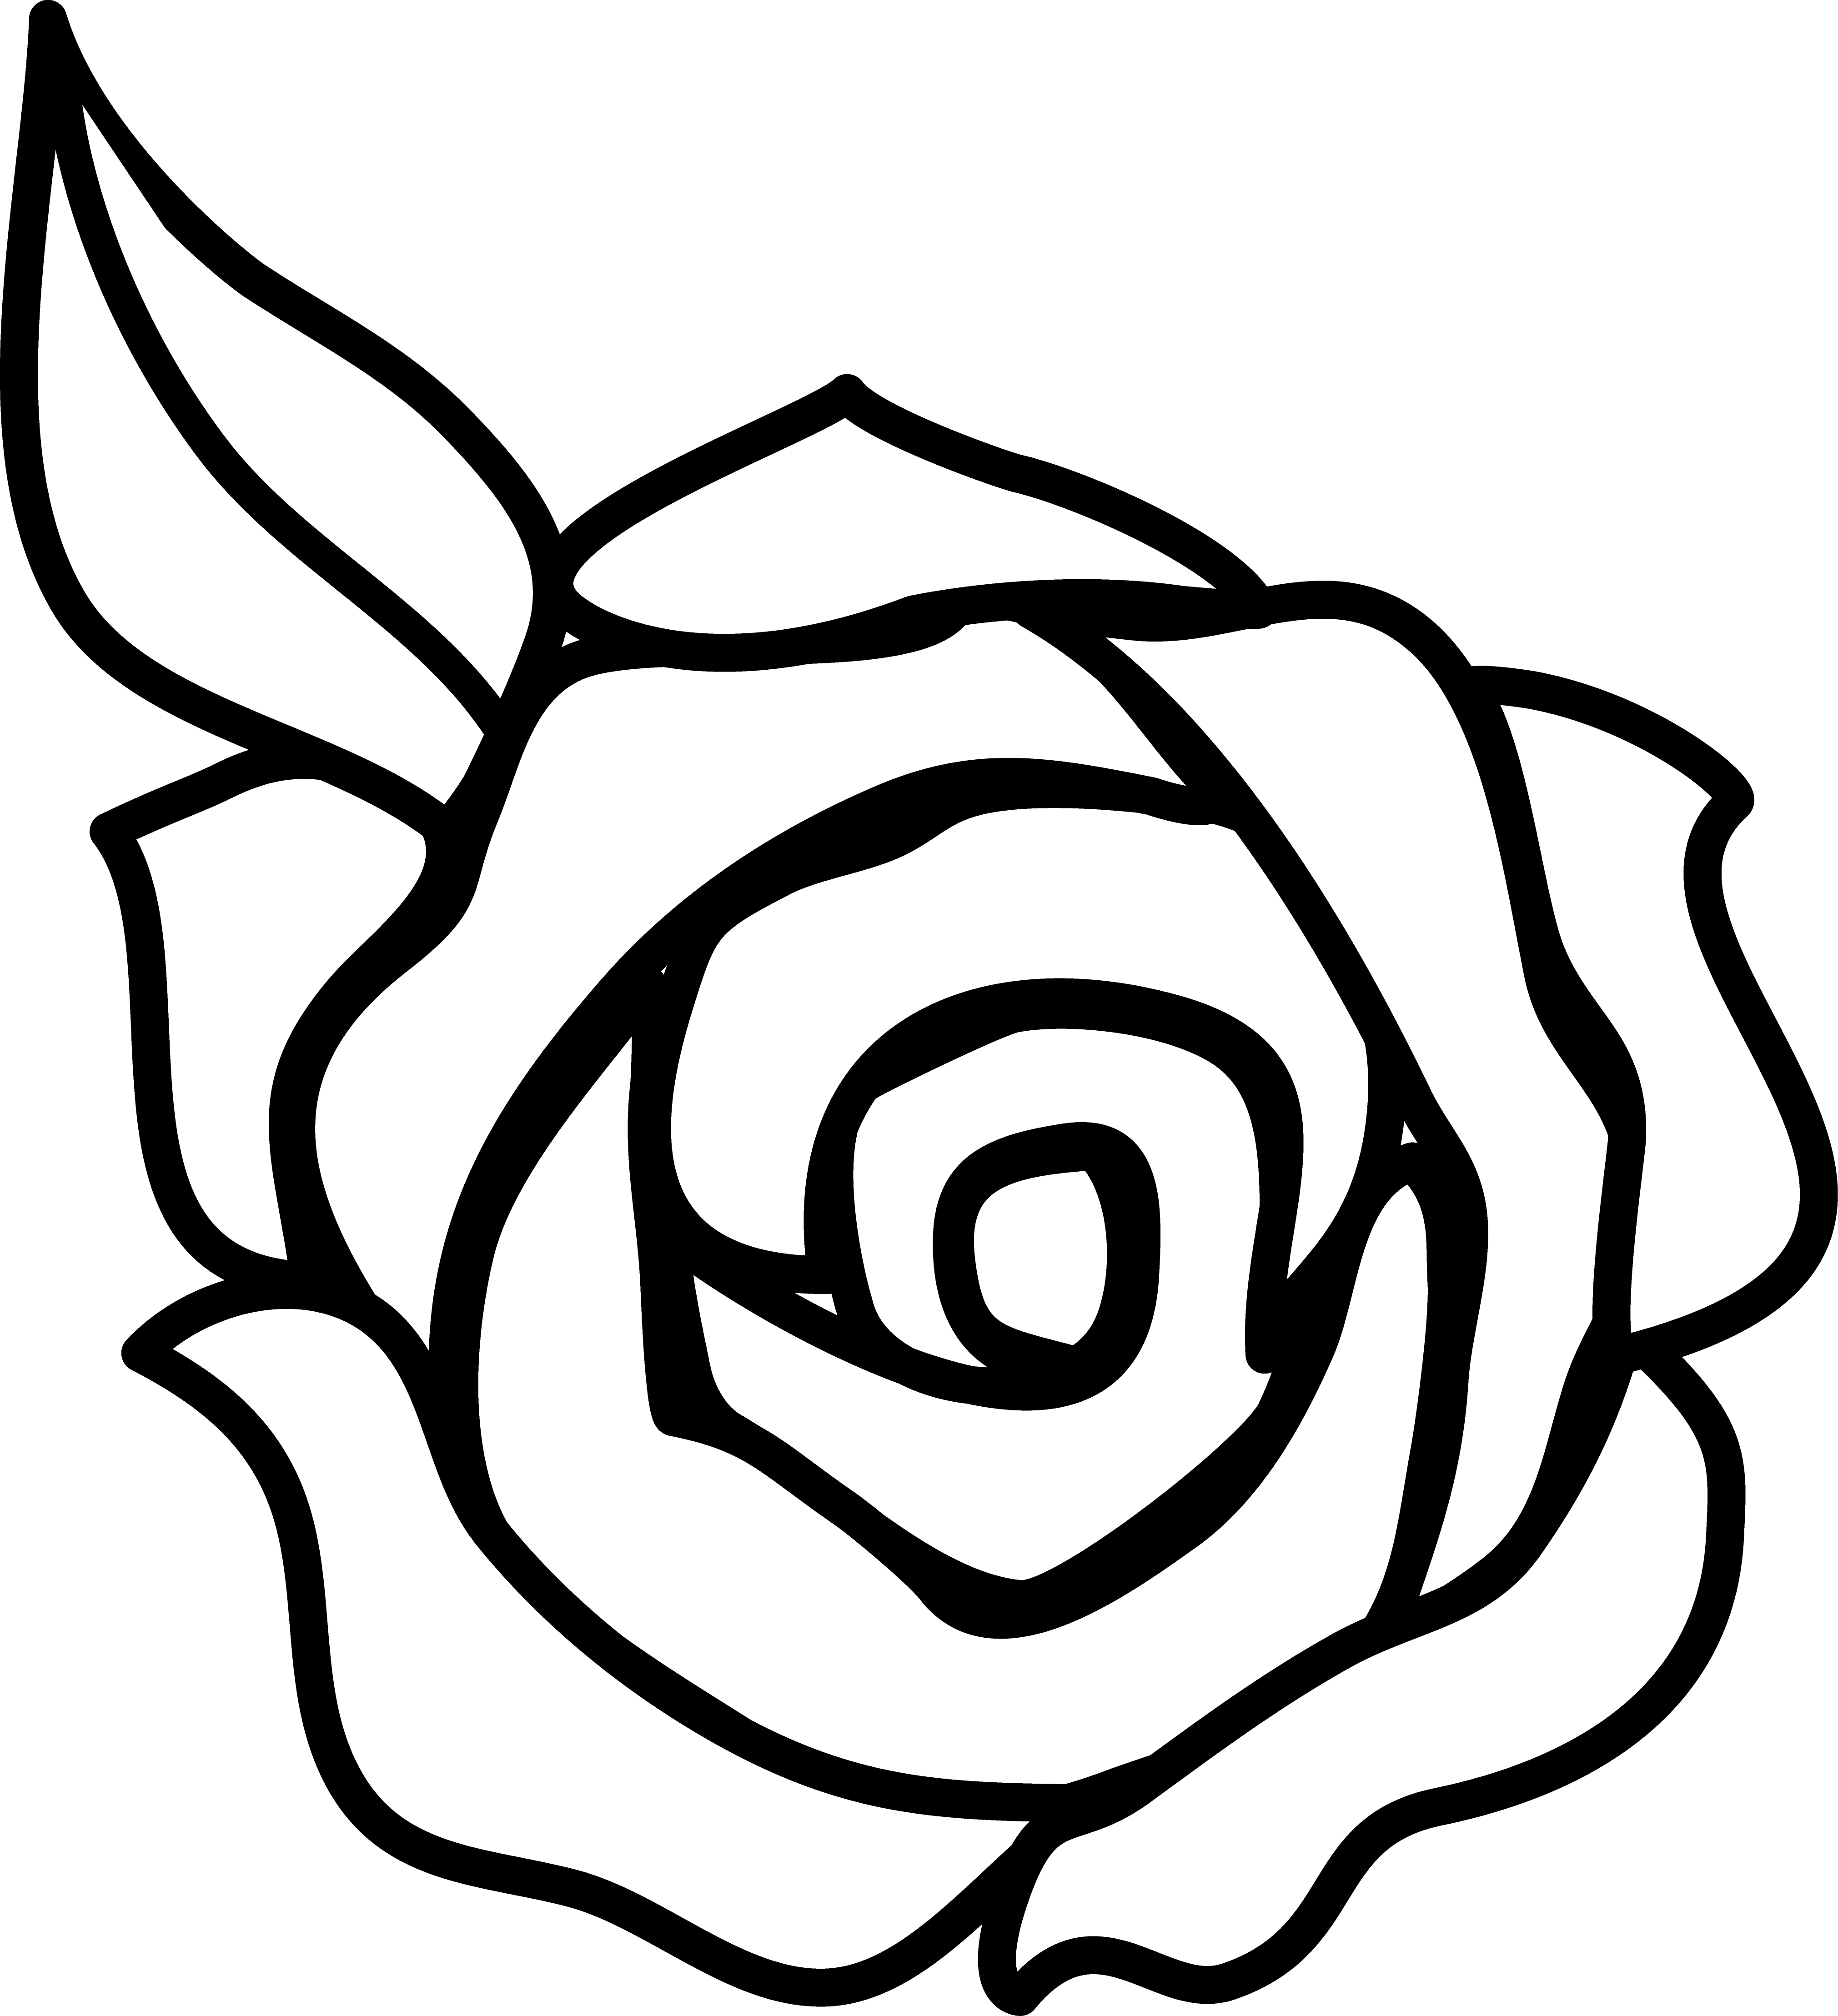 4042x4434 Roses Rose Clip Art Black And White Free Clipart Images